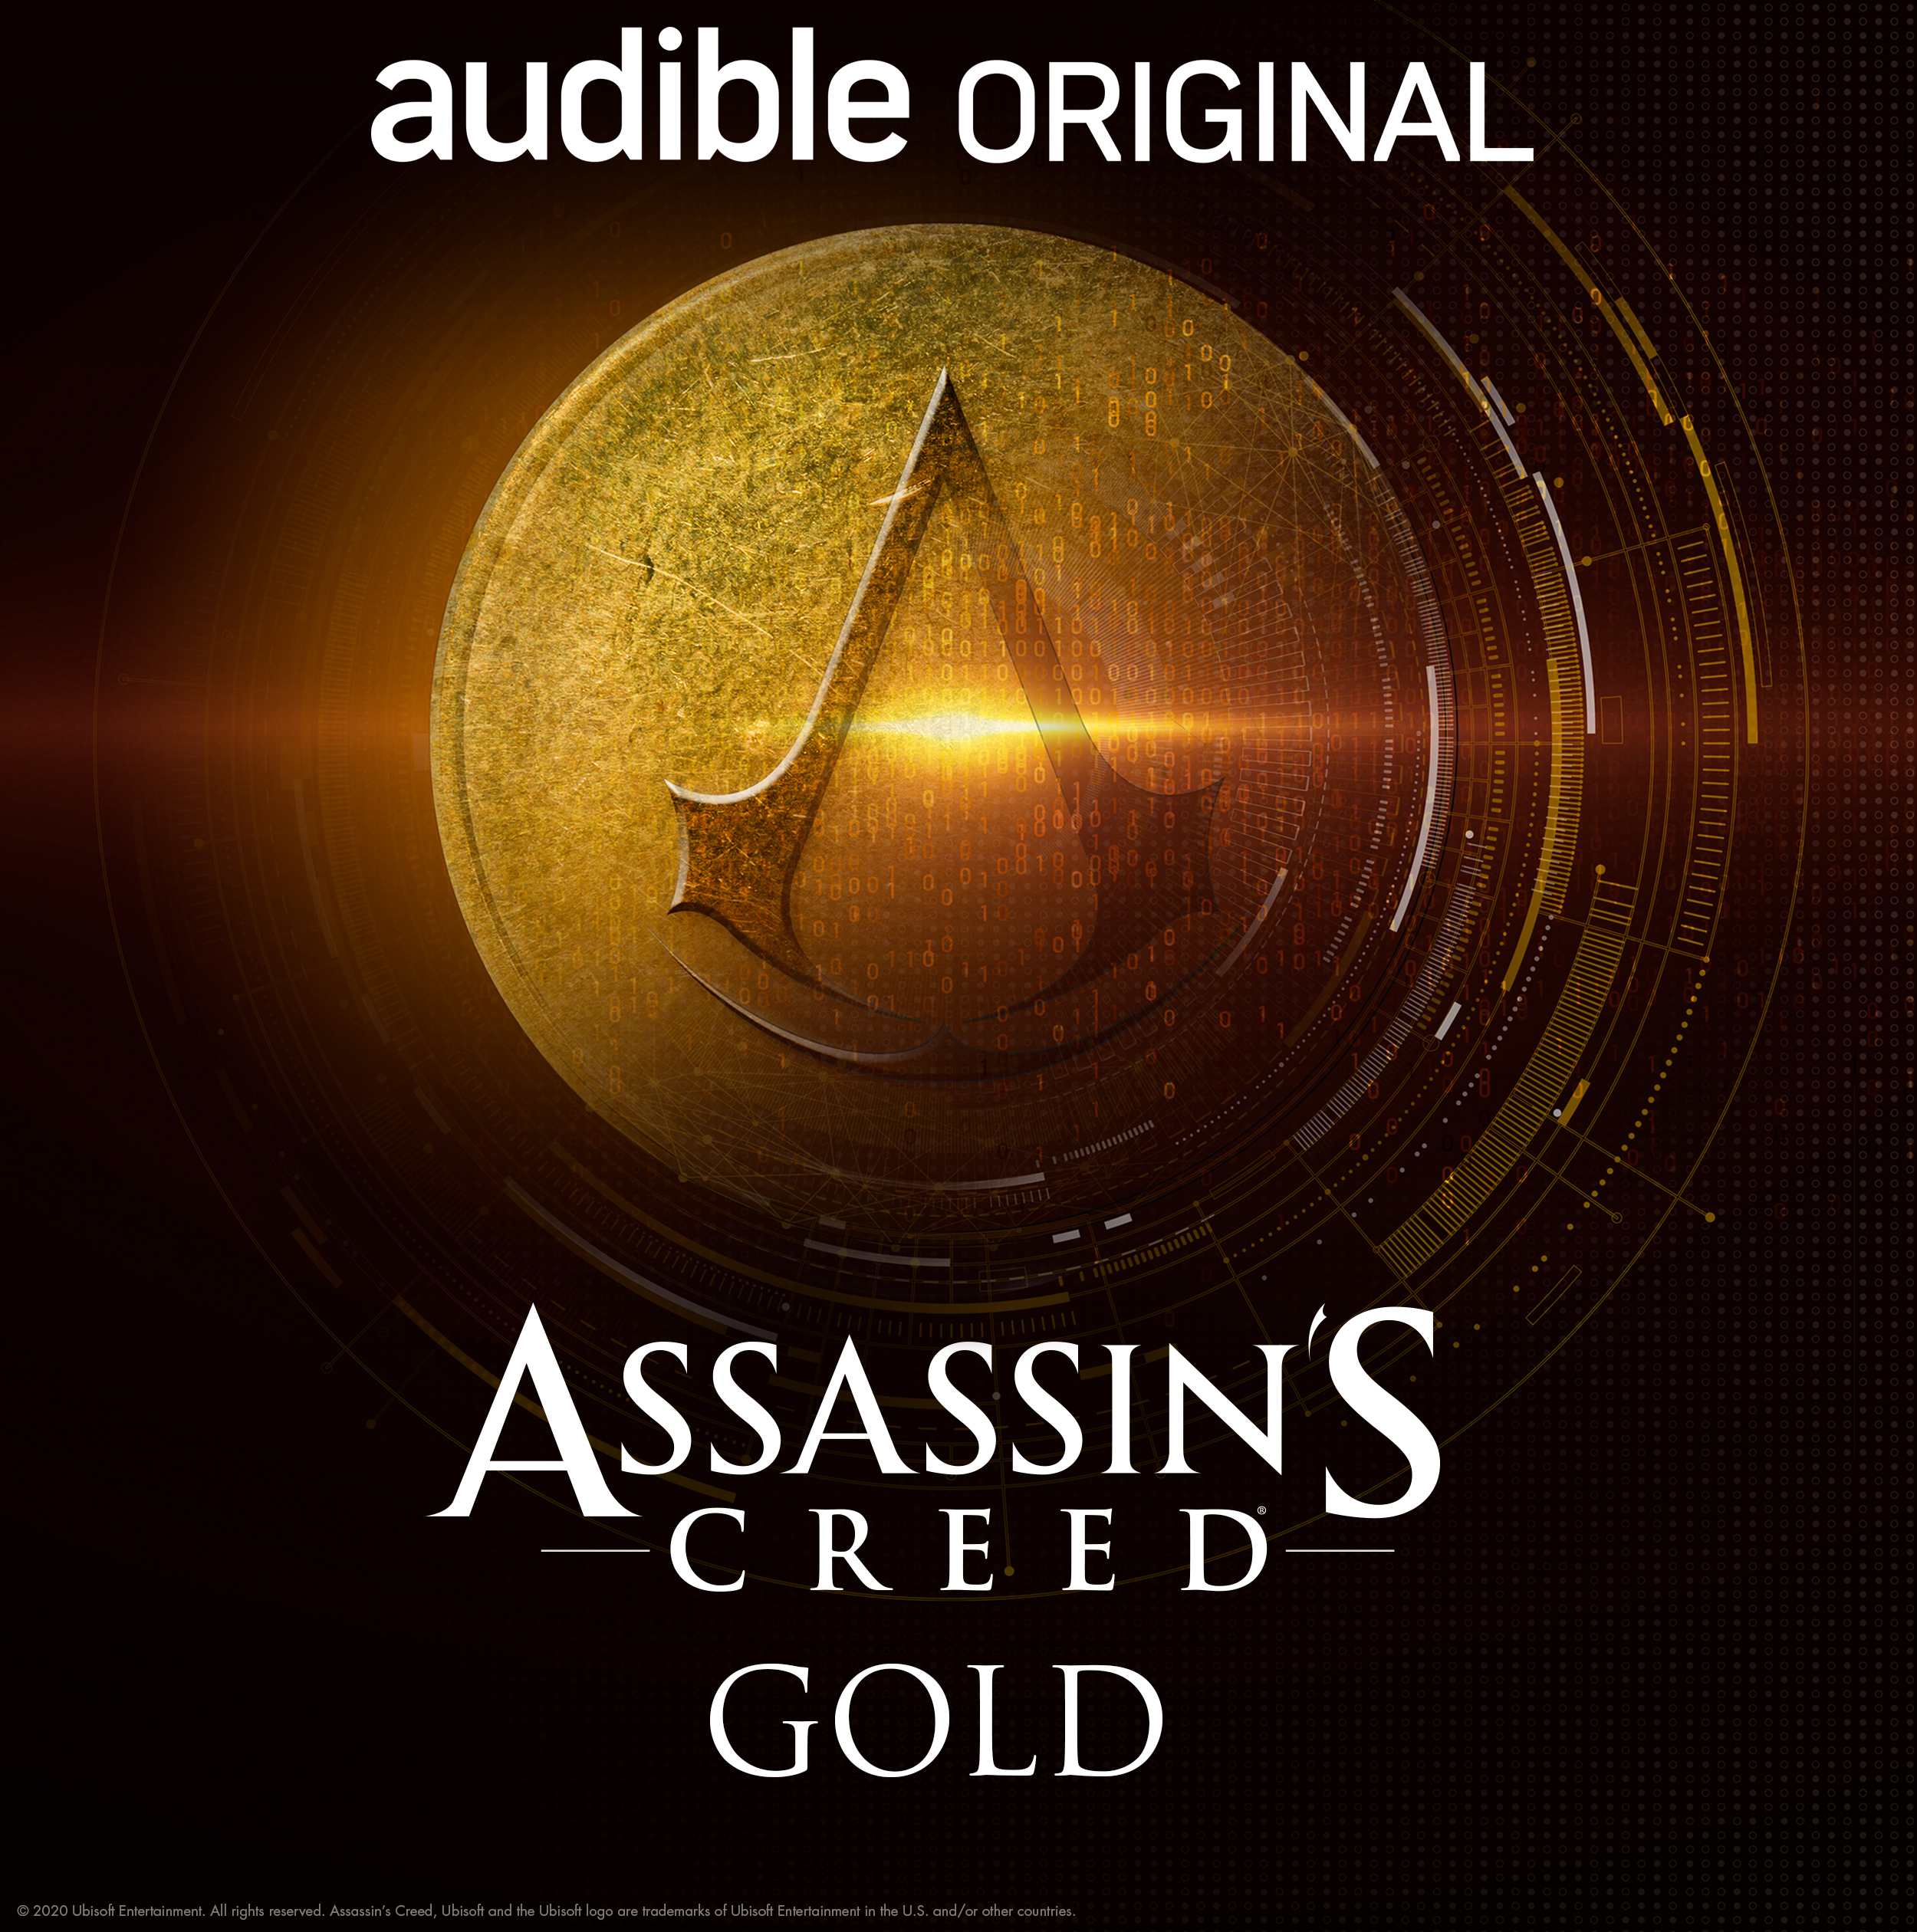 Assassin's Creed Gold